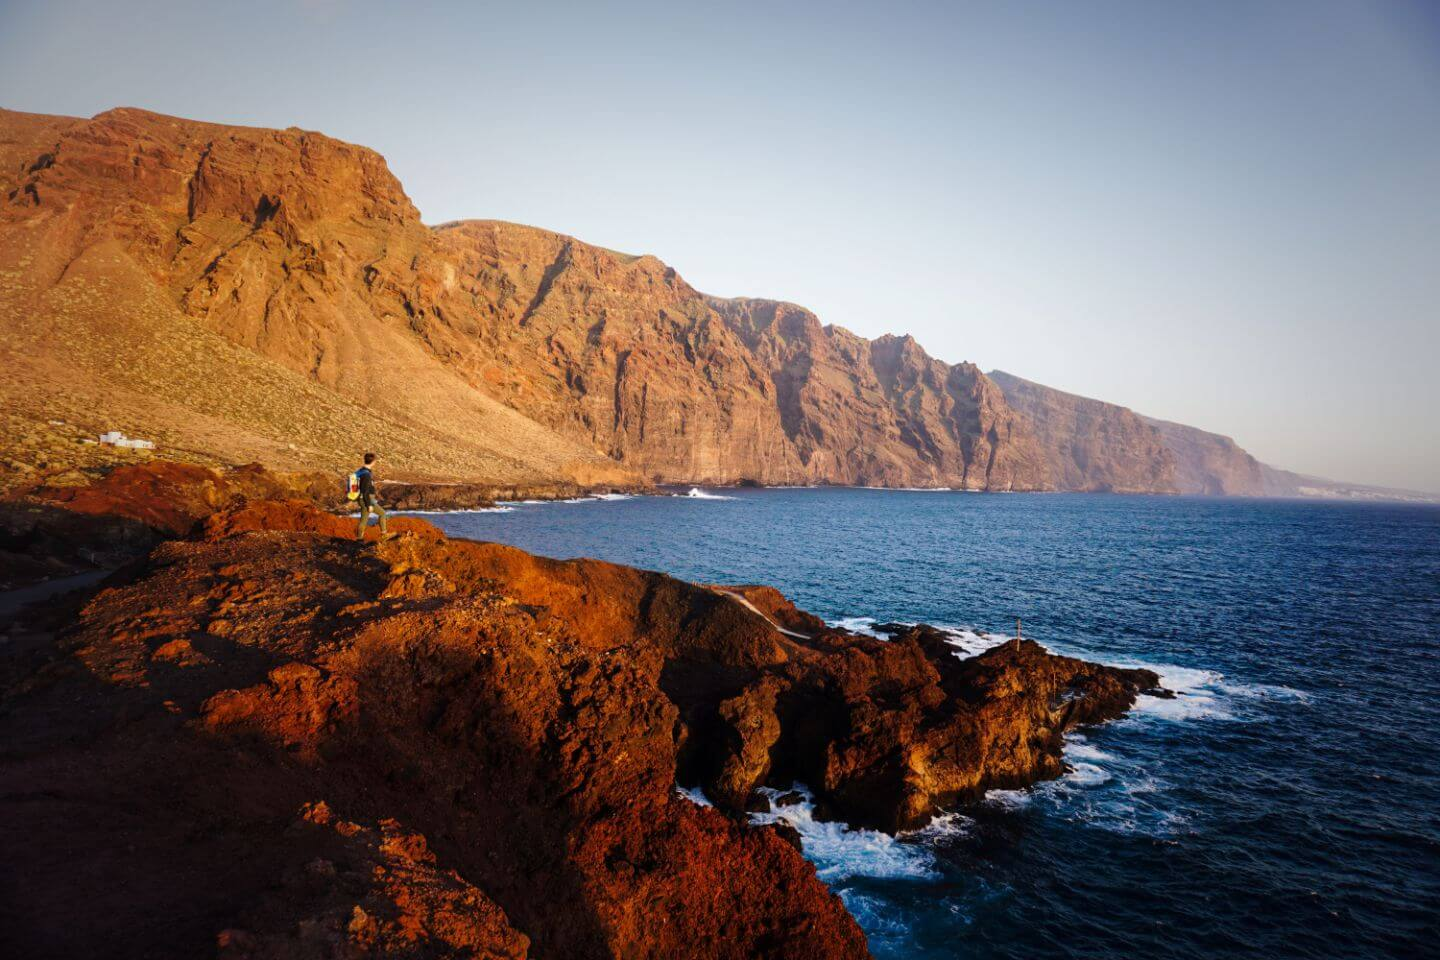 Things to Do in Tenerife in January - Visit Punta de Teno